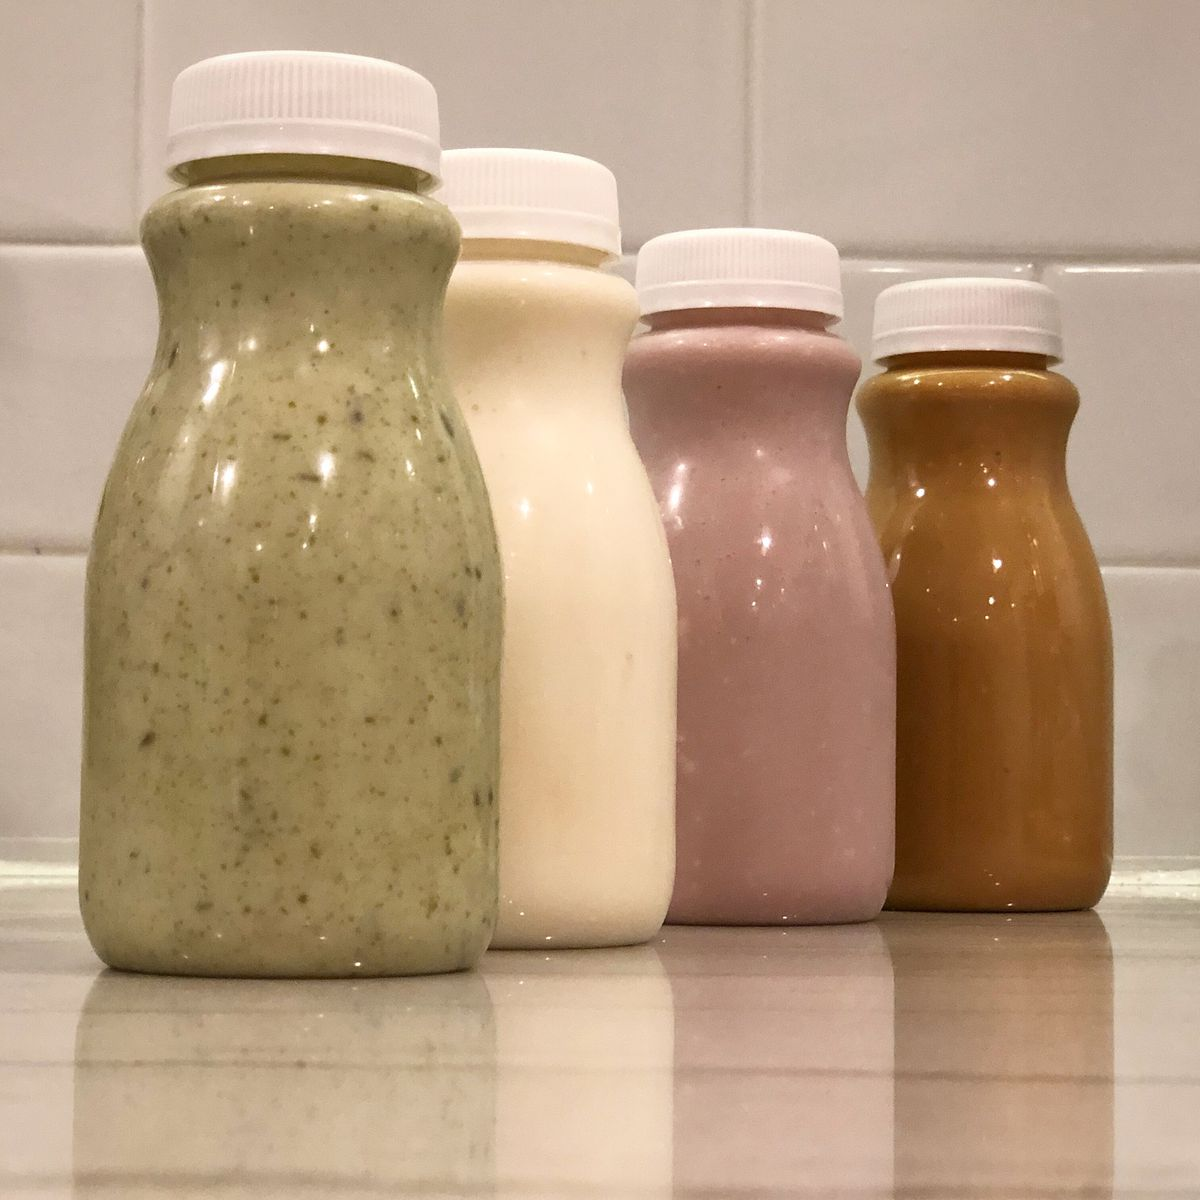 four bottles of drinkable yogurt and kefir, in pistachio, strawberry, vanilla, and salted caramel flavors